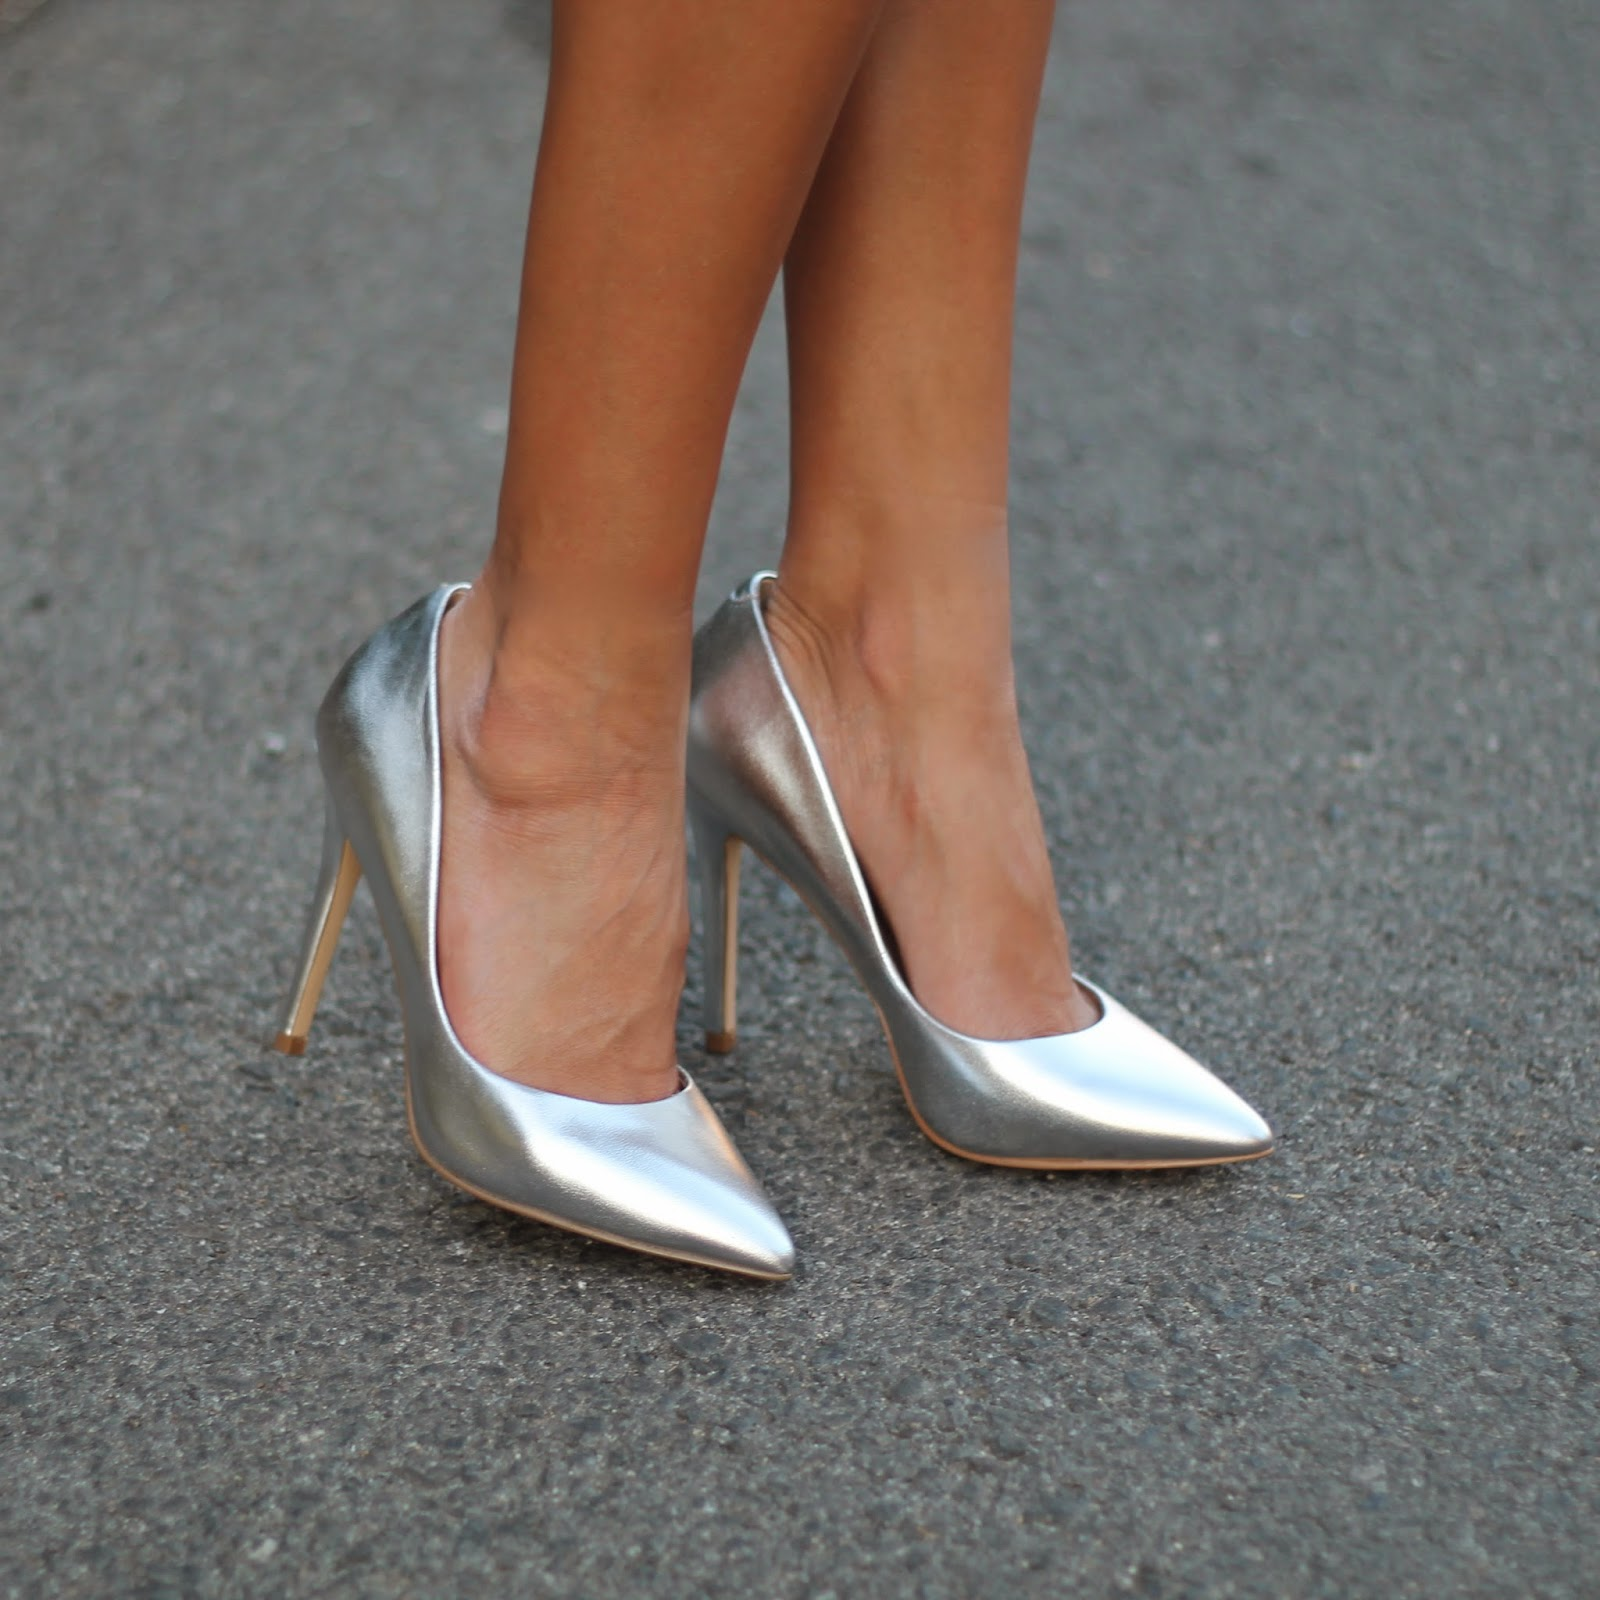 charles david heels, silver pumps, holiday party outfit, what to wear